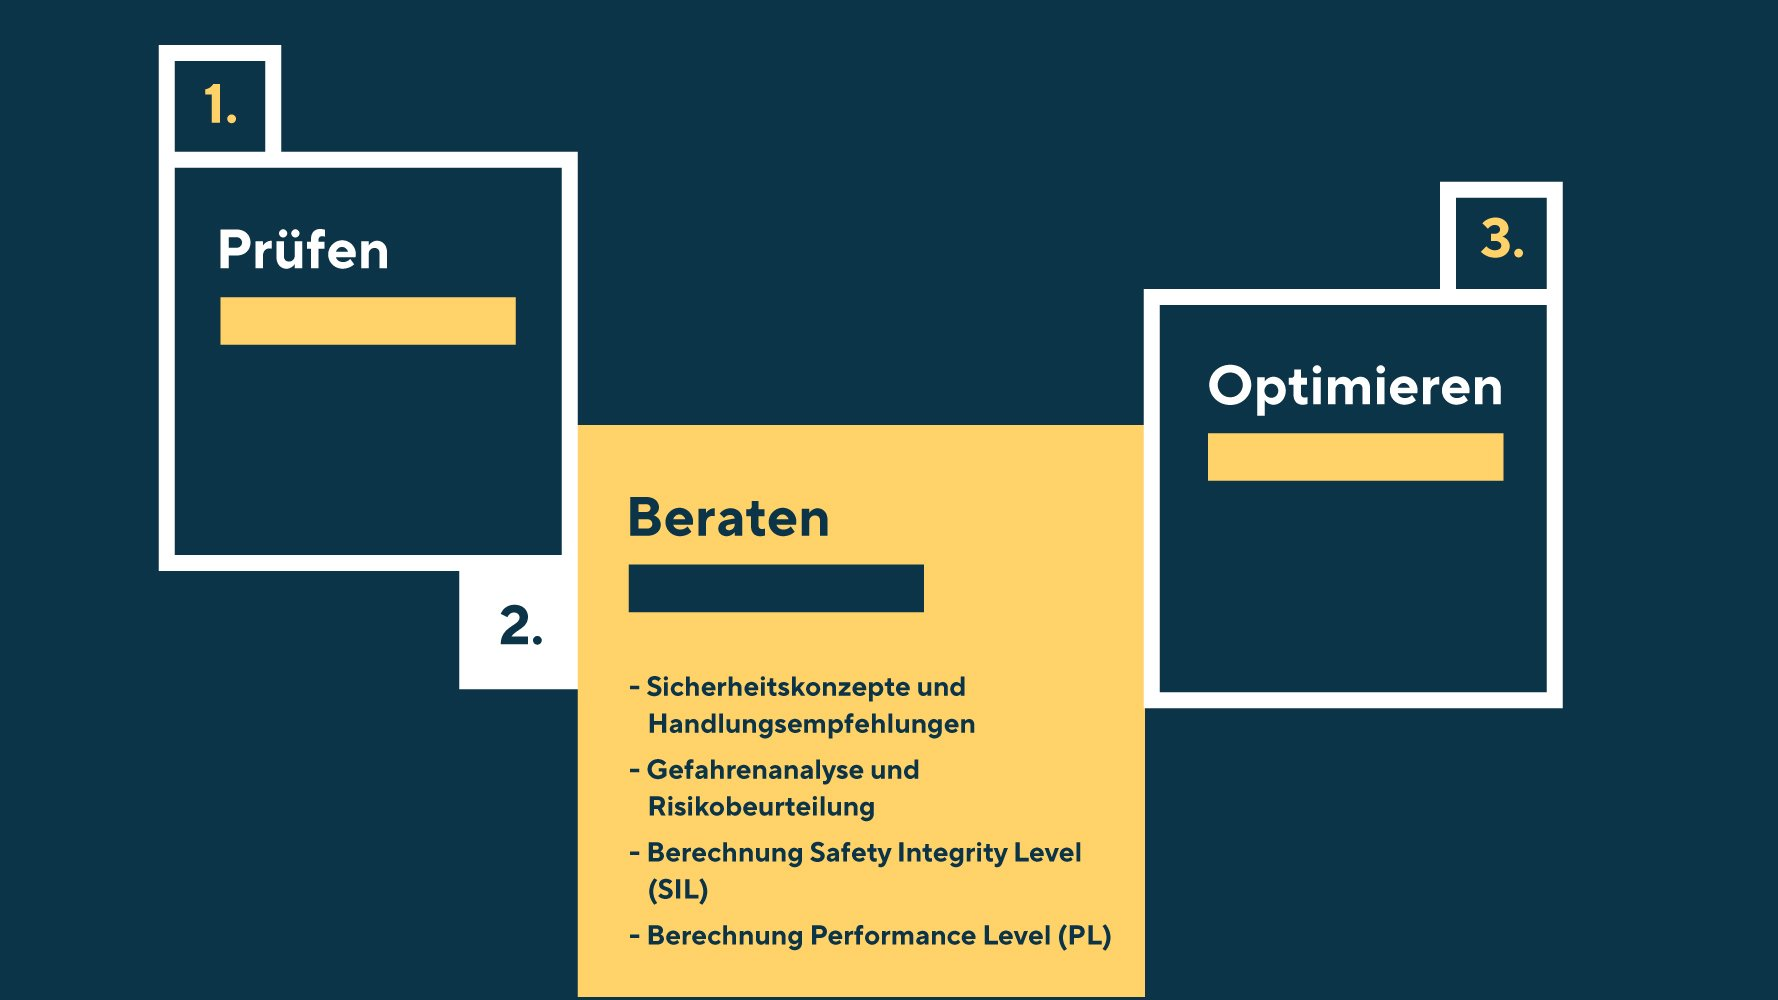 Das Leistungsfeld Beraten umfasst Sicherheitskonzepte und Handlungsempfehlungen, Gefahrenanalyse und Risikobeurteilung, Berechnung Safety Integrity Level (SIL) und Berechnung Performance Level (PL)